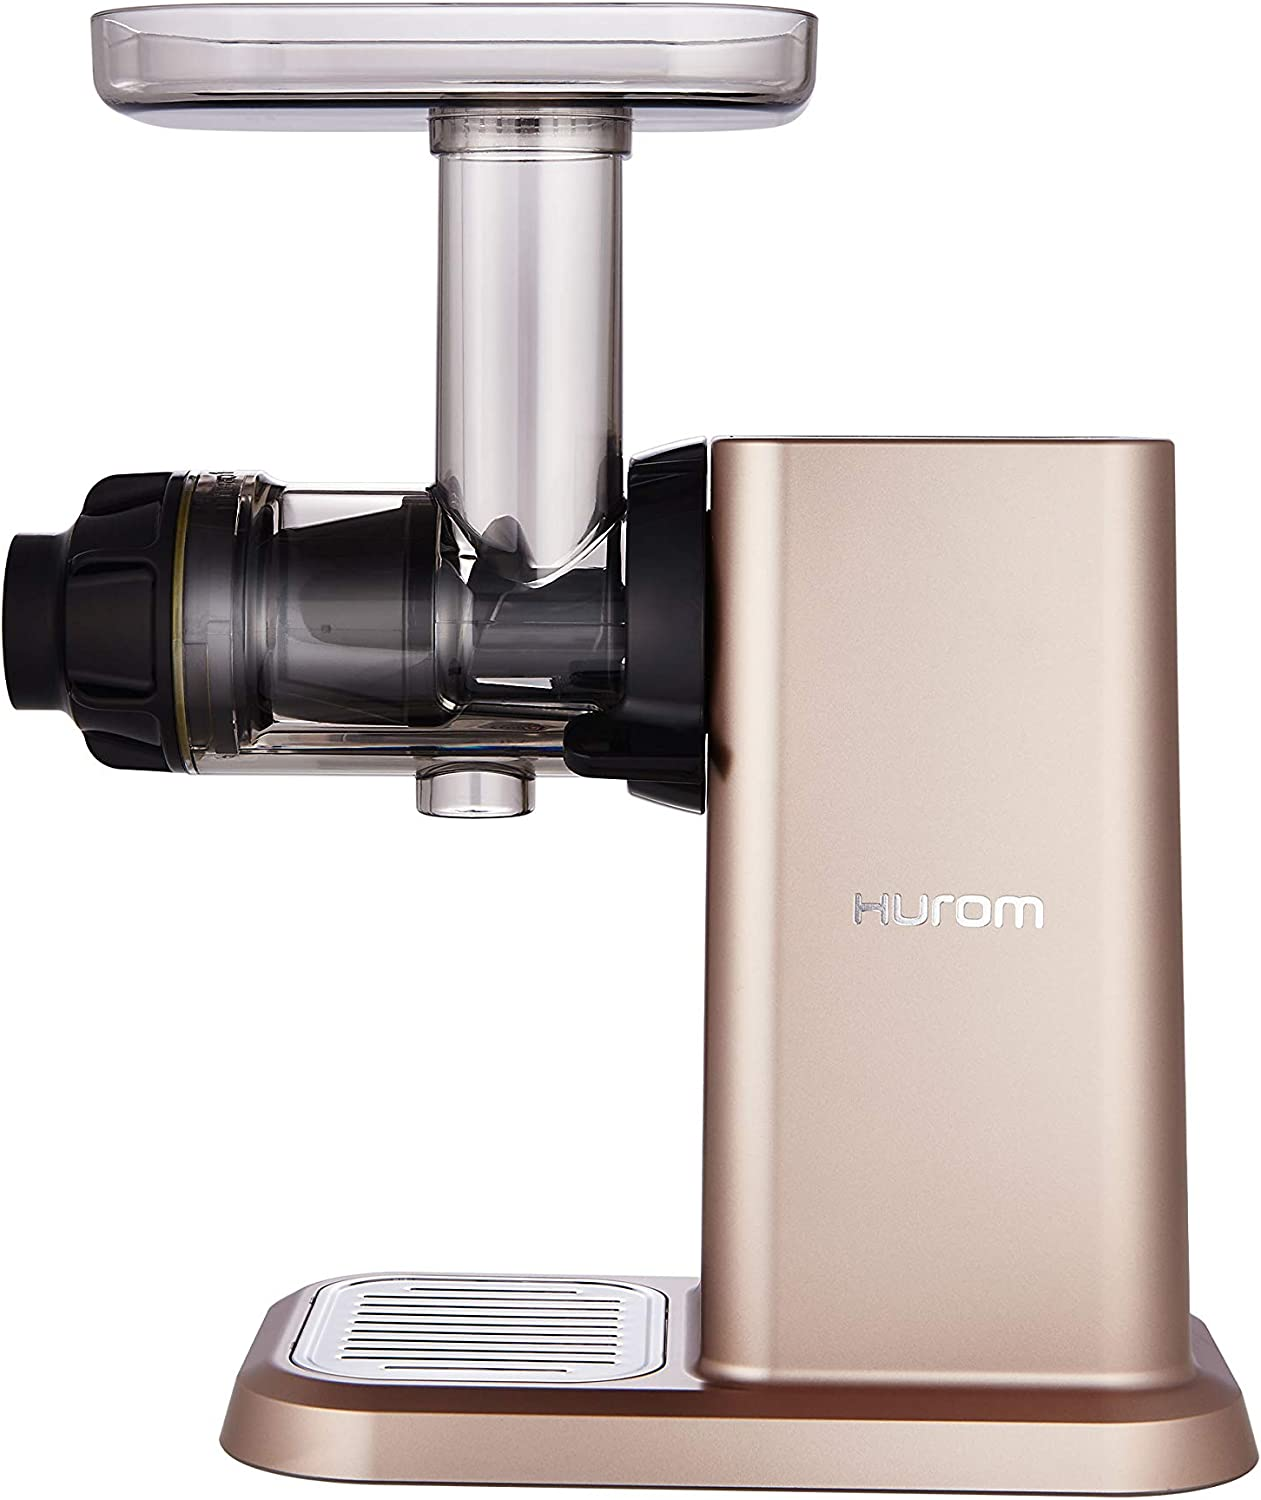 Best Hurom Juicer 2021 - Reviews & Buying Guide 5